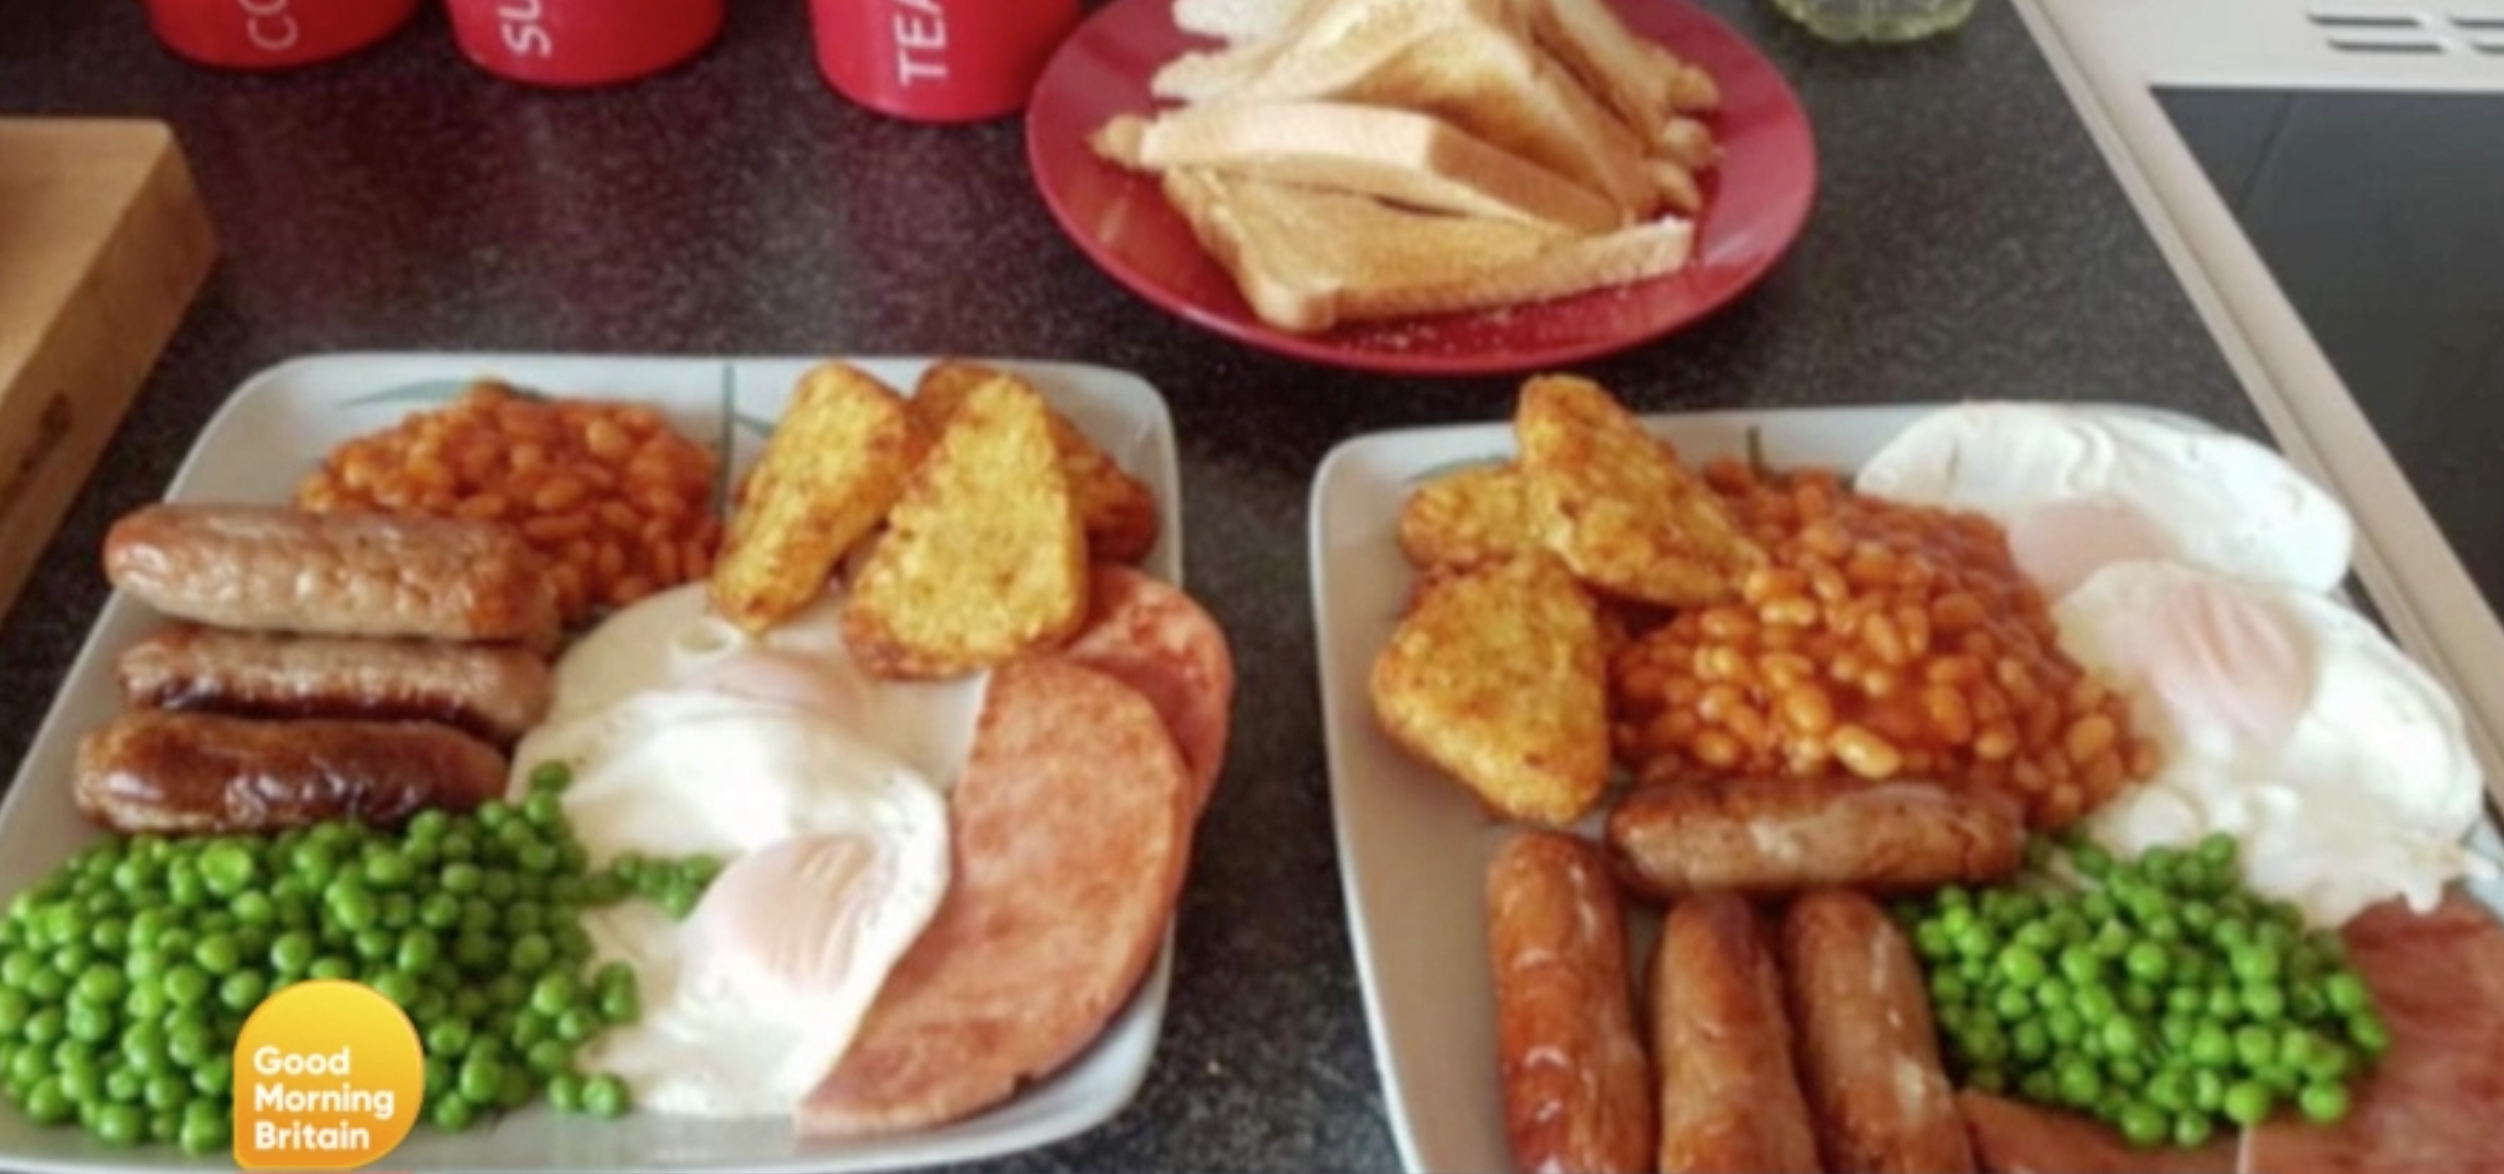 Brits urge woman to 'seek help' after she shares picture of her full English breakfast with PEAS